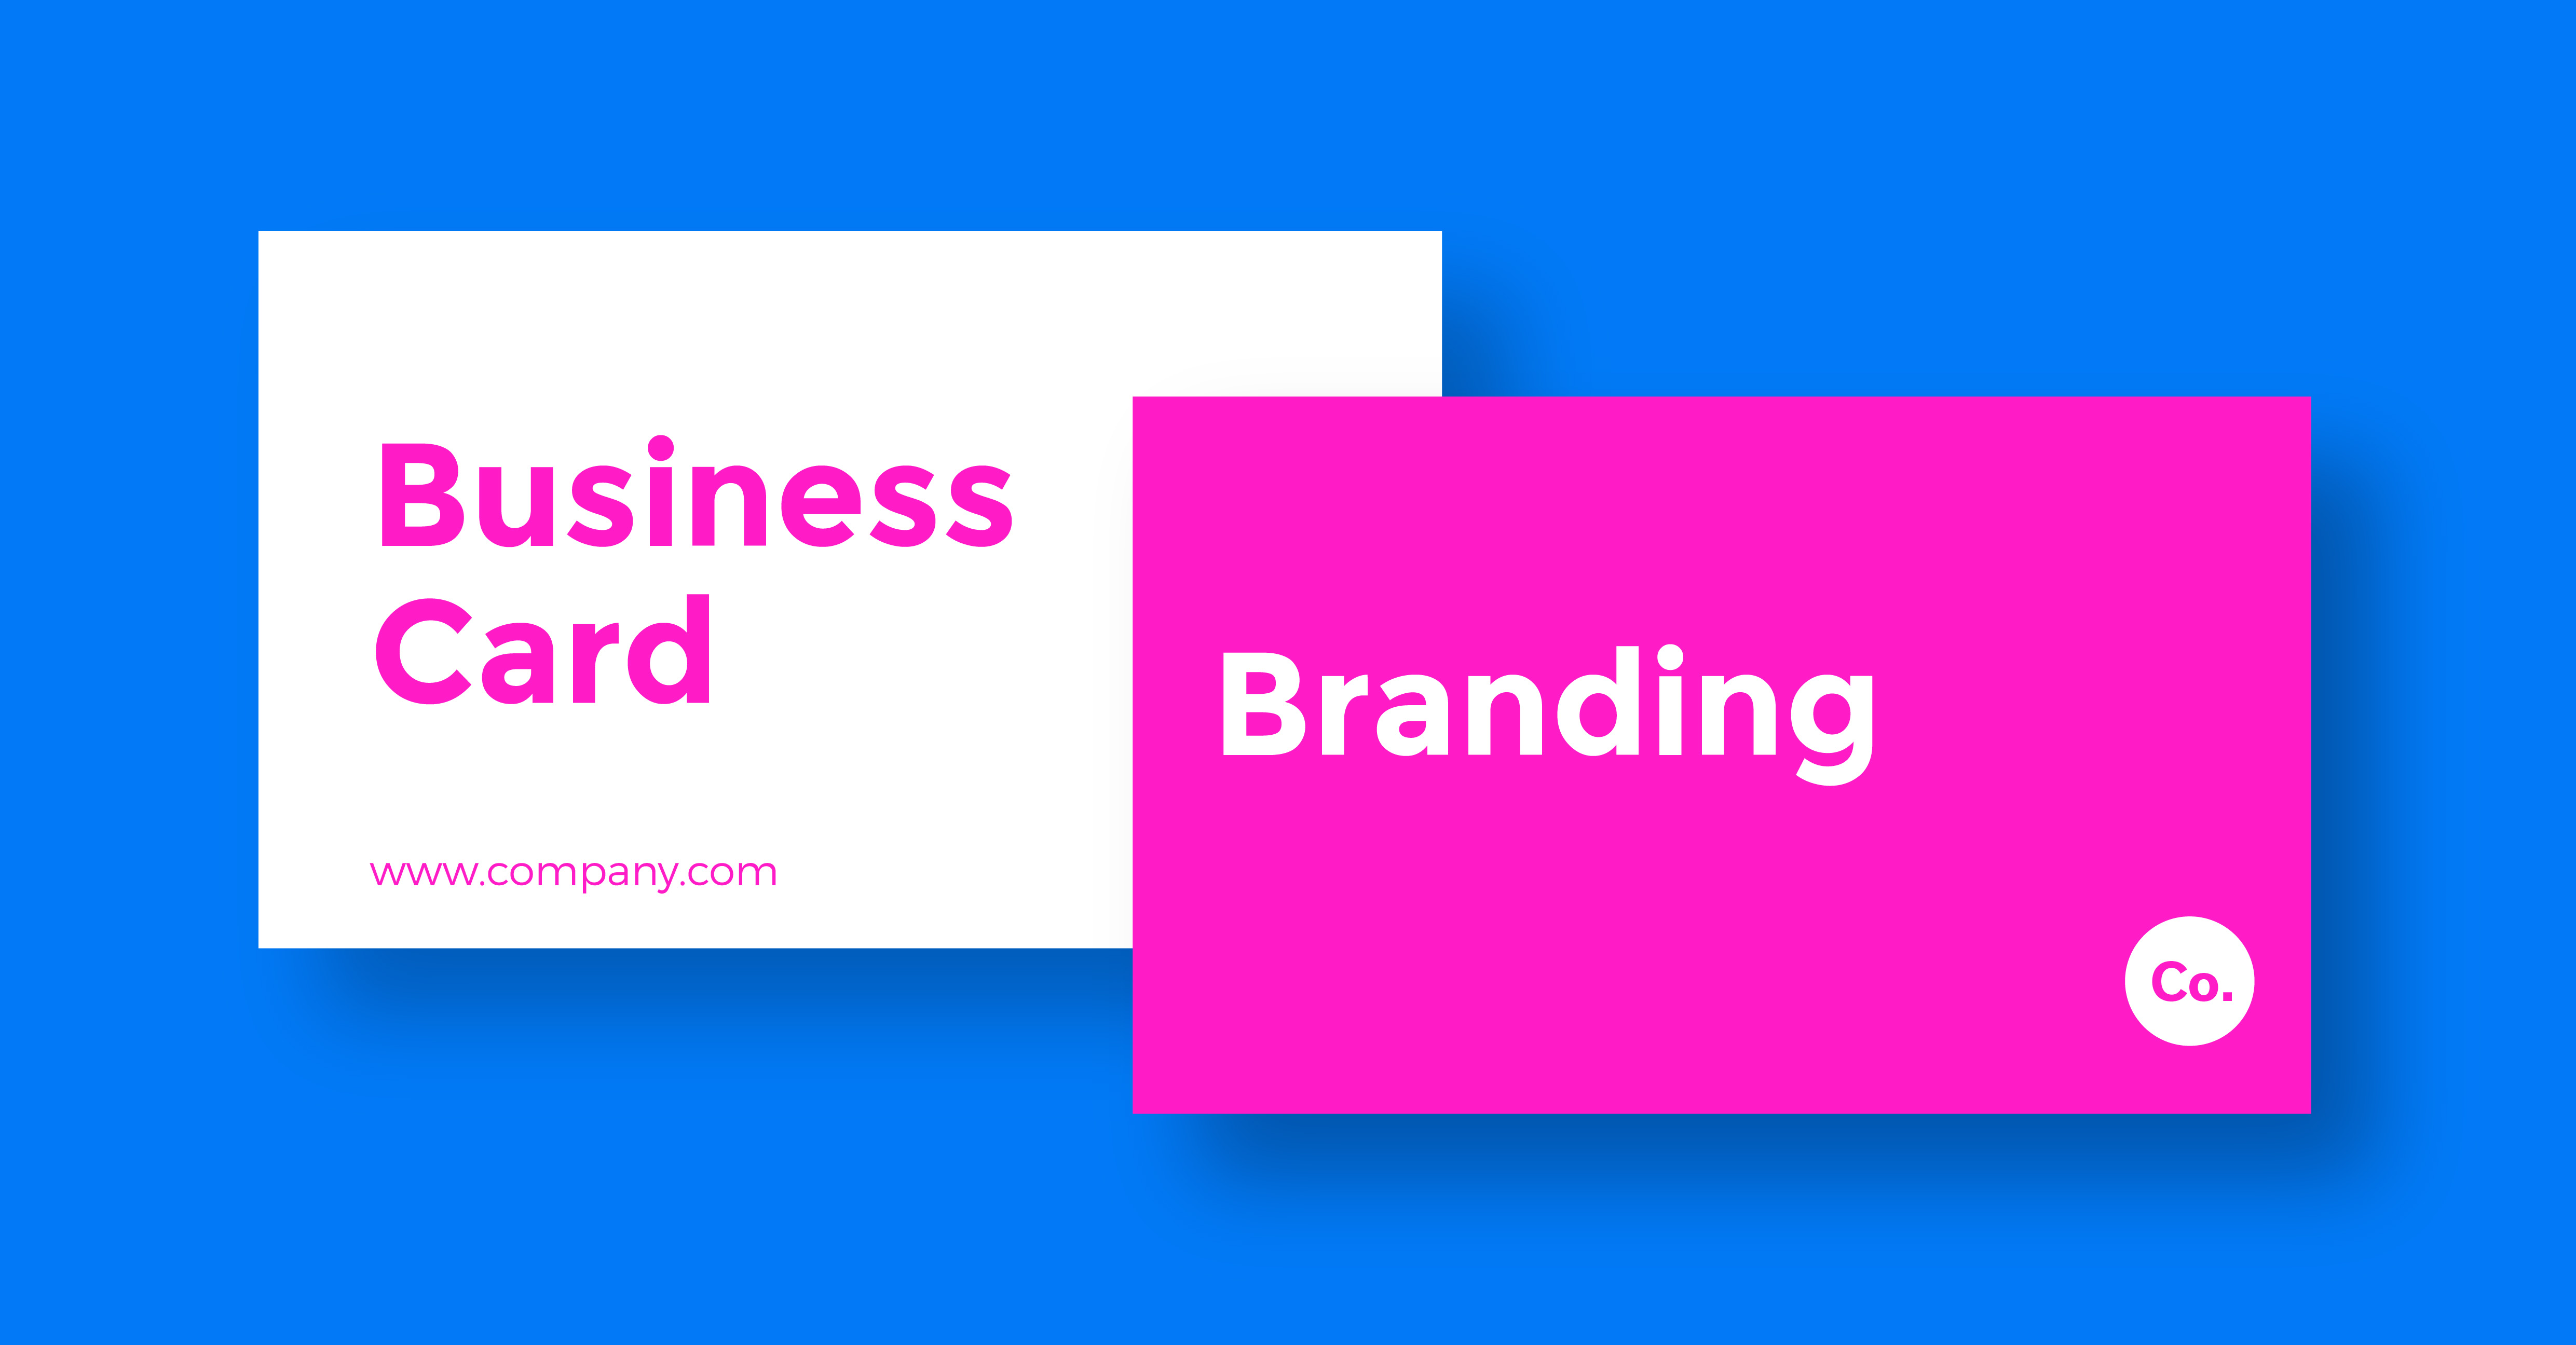 How to design business cards people will remember you by – Learn